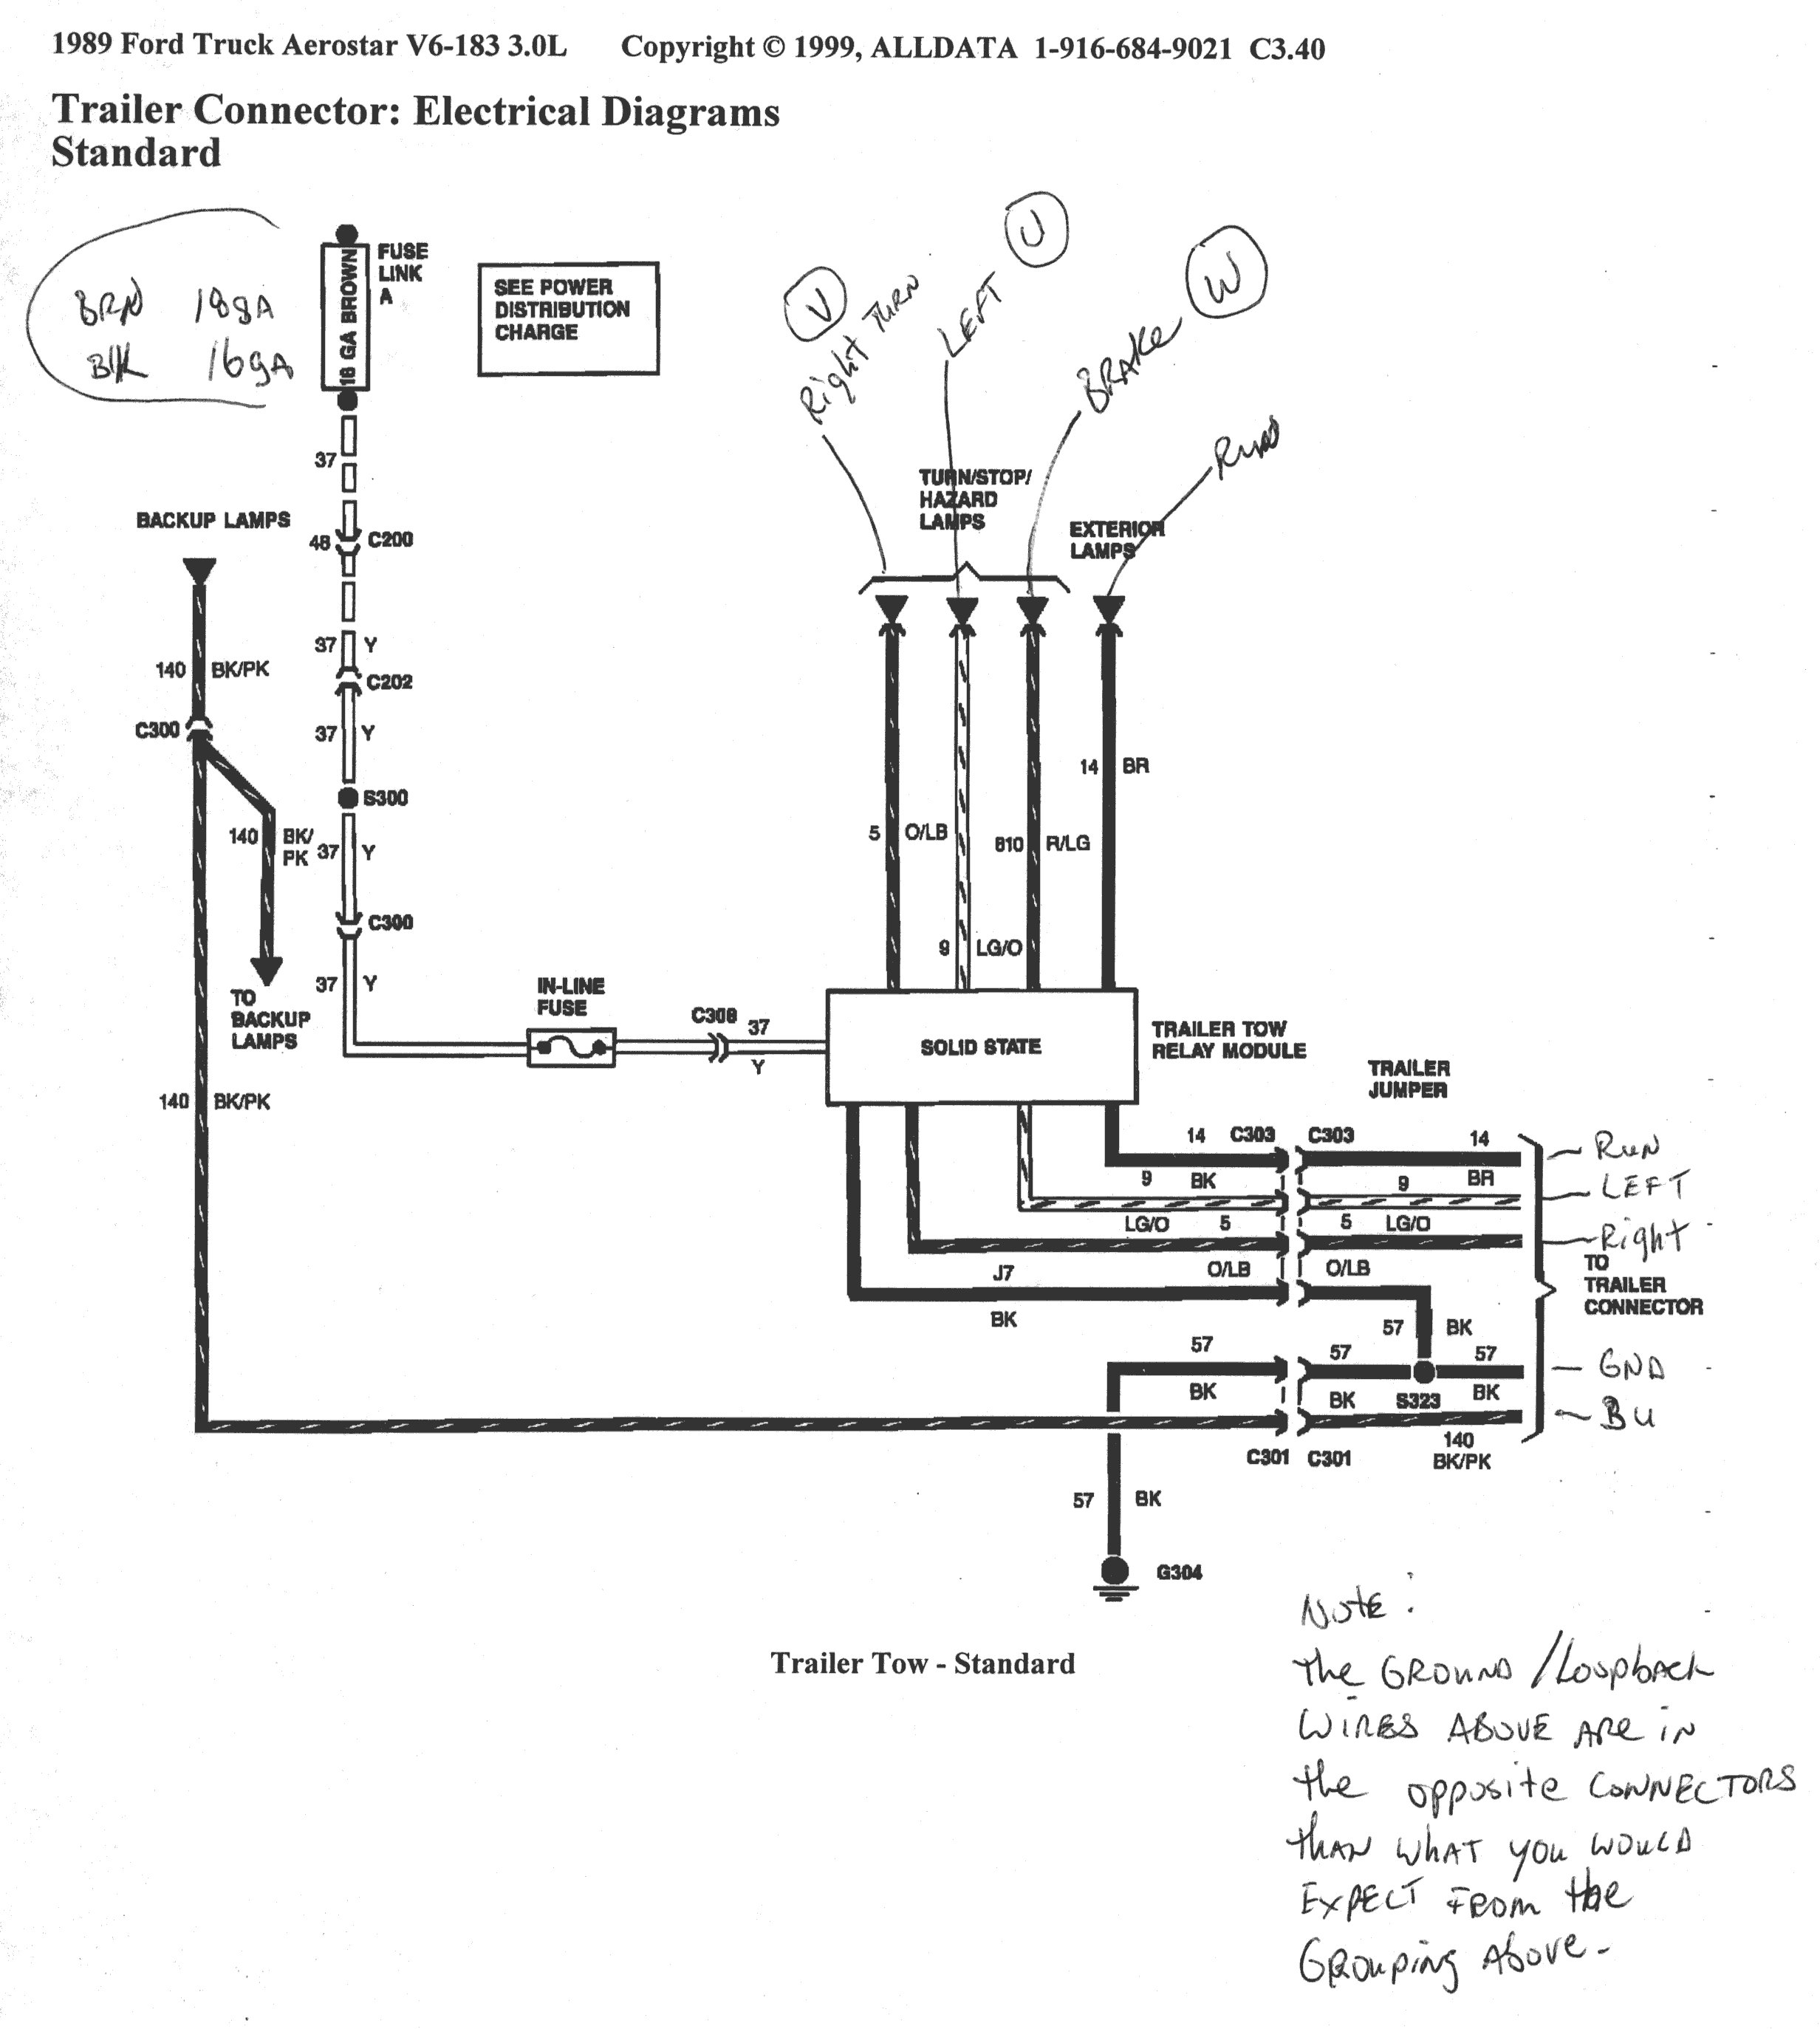 diagram] isuzu frr truck light wiring diagram full version hd quality wiring  diagram - carbeltdiagrams.seewhatimean.it  diagram database